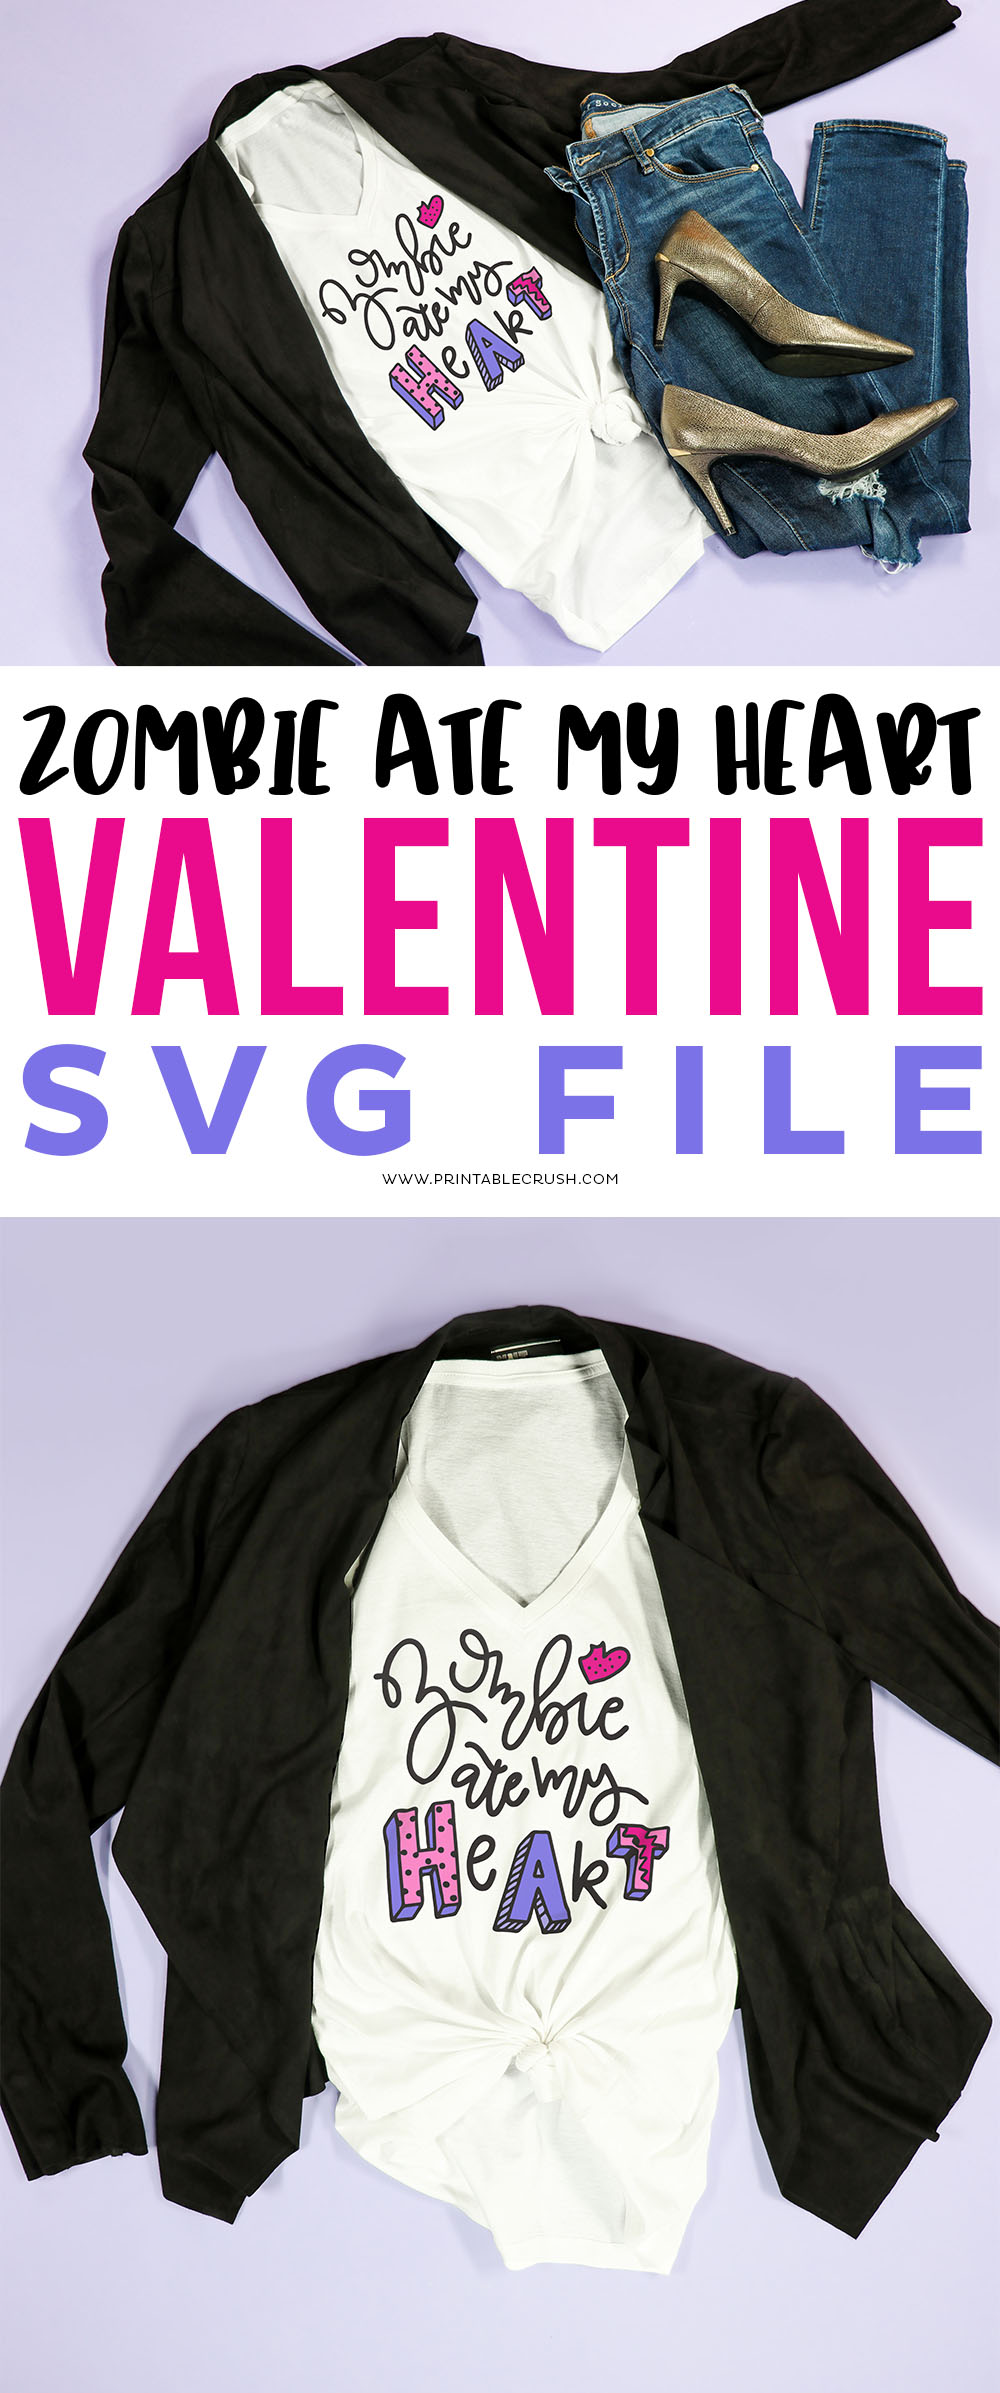 Free SVG File for Valentine's Day - SVG File for someone who hates Valentine's Day - Anti-Valentine SVG File - Zombie Ate My Heart SVG File - Printable Crush